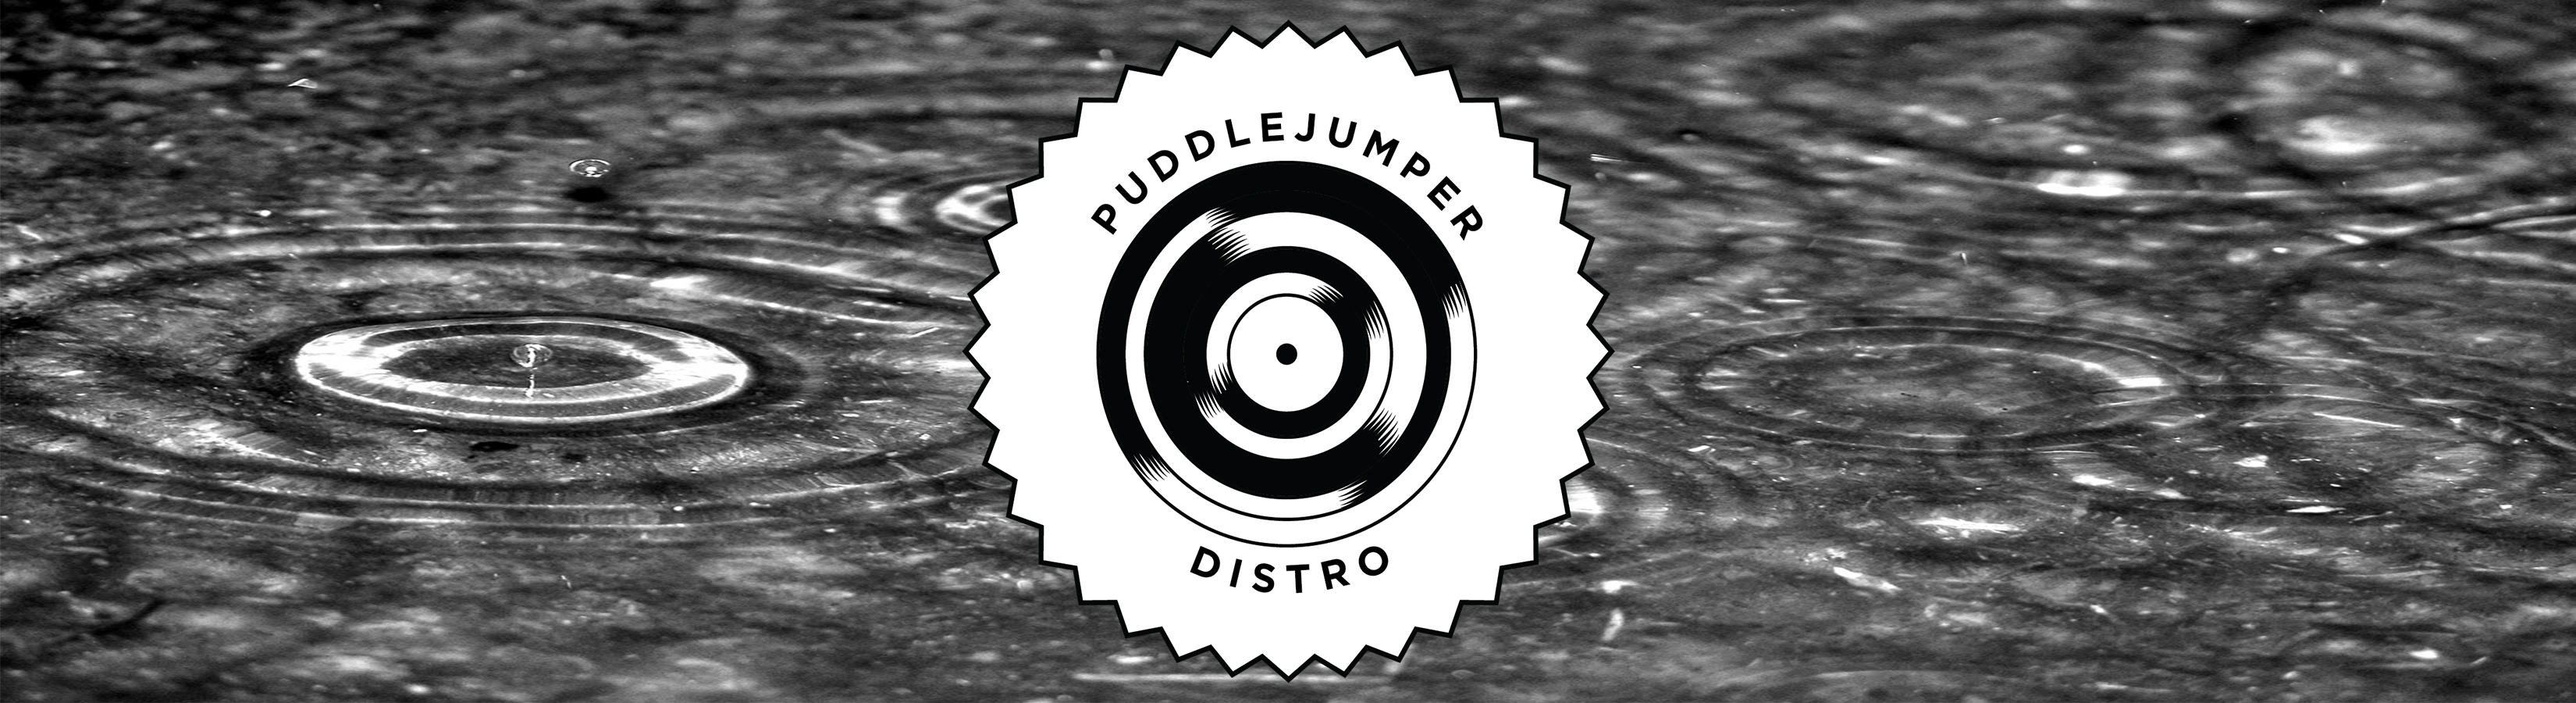 Puddlejumper Distro